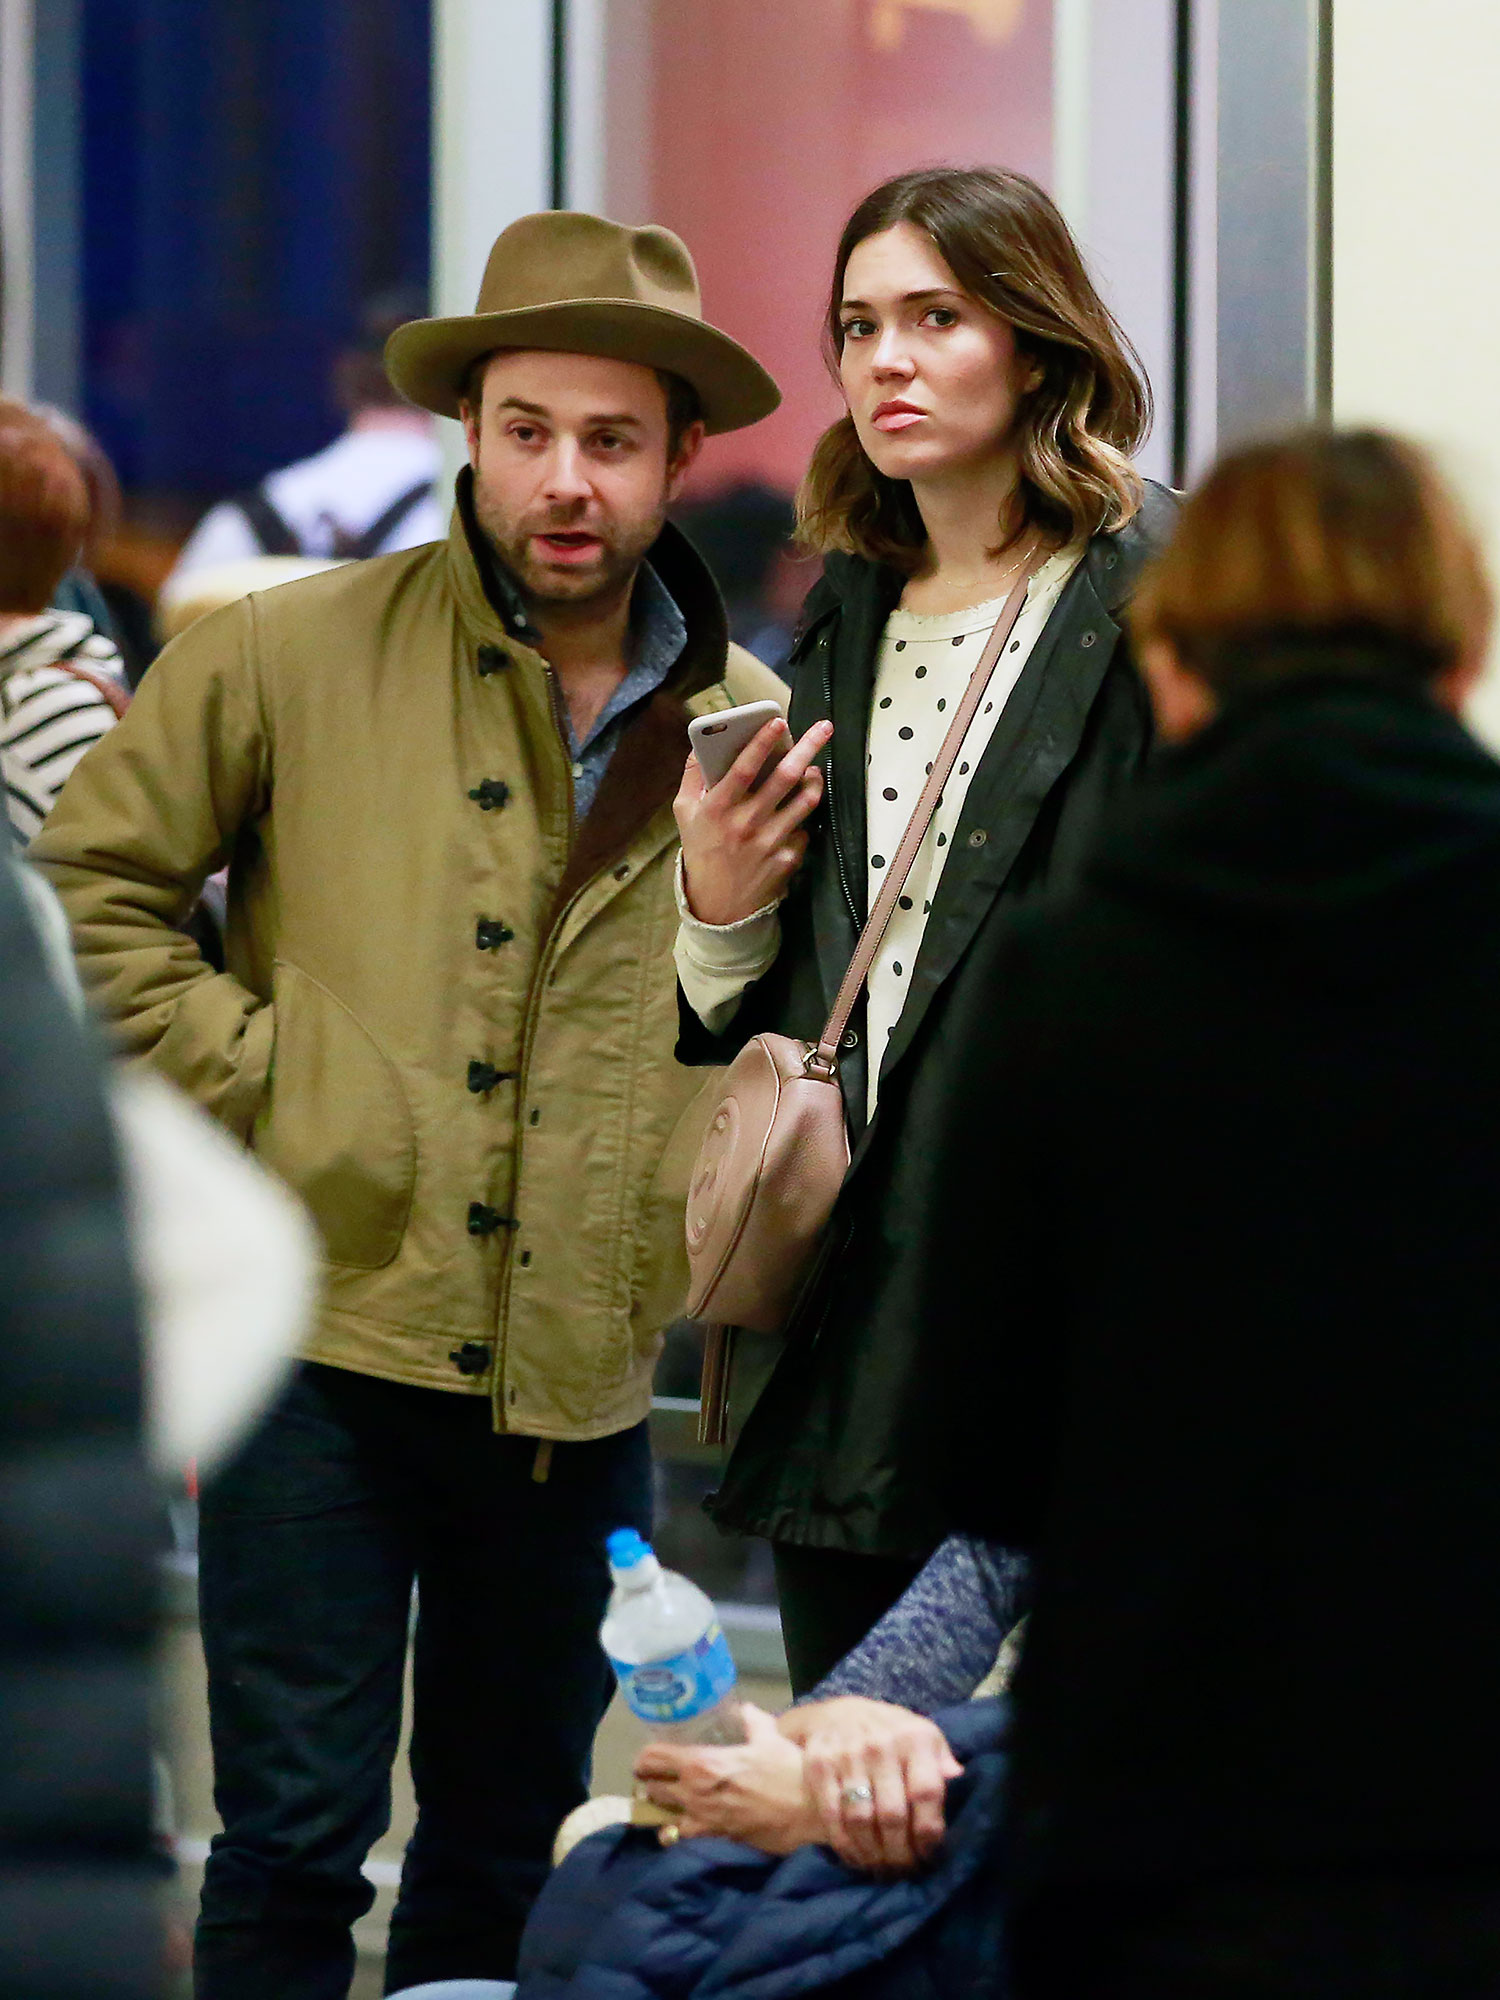 EXCLUSIVE: Mandy Moore cosies up to rumored new beau, Taylor Goldsmith only months after divorcing Ryan Adams.